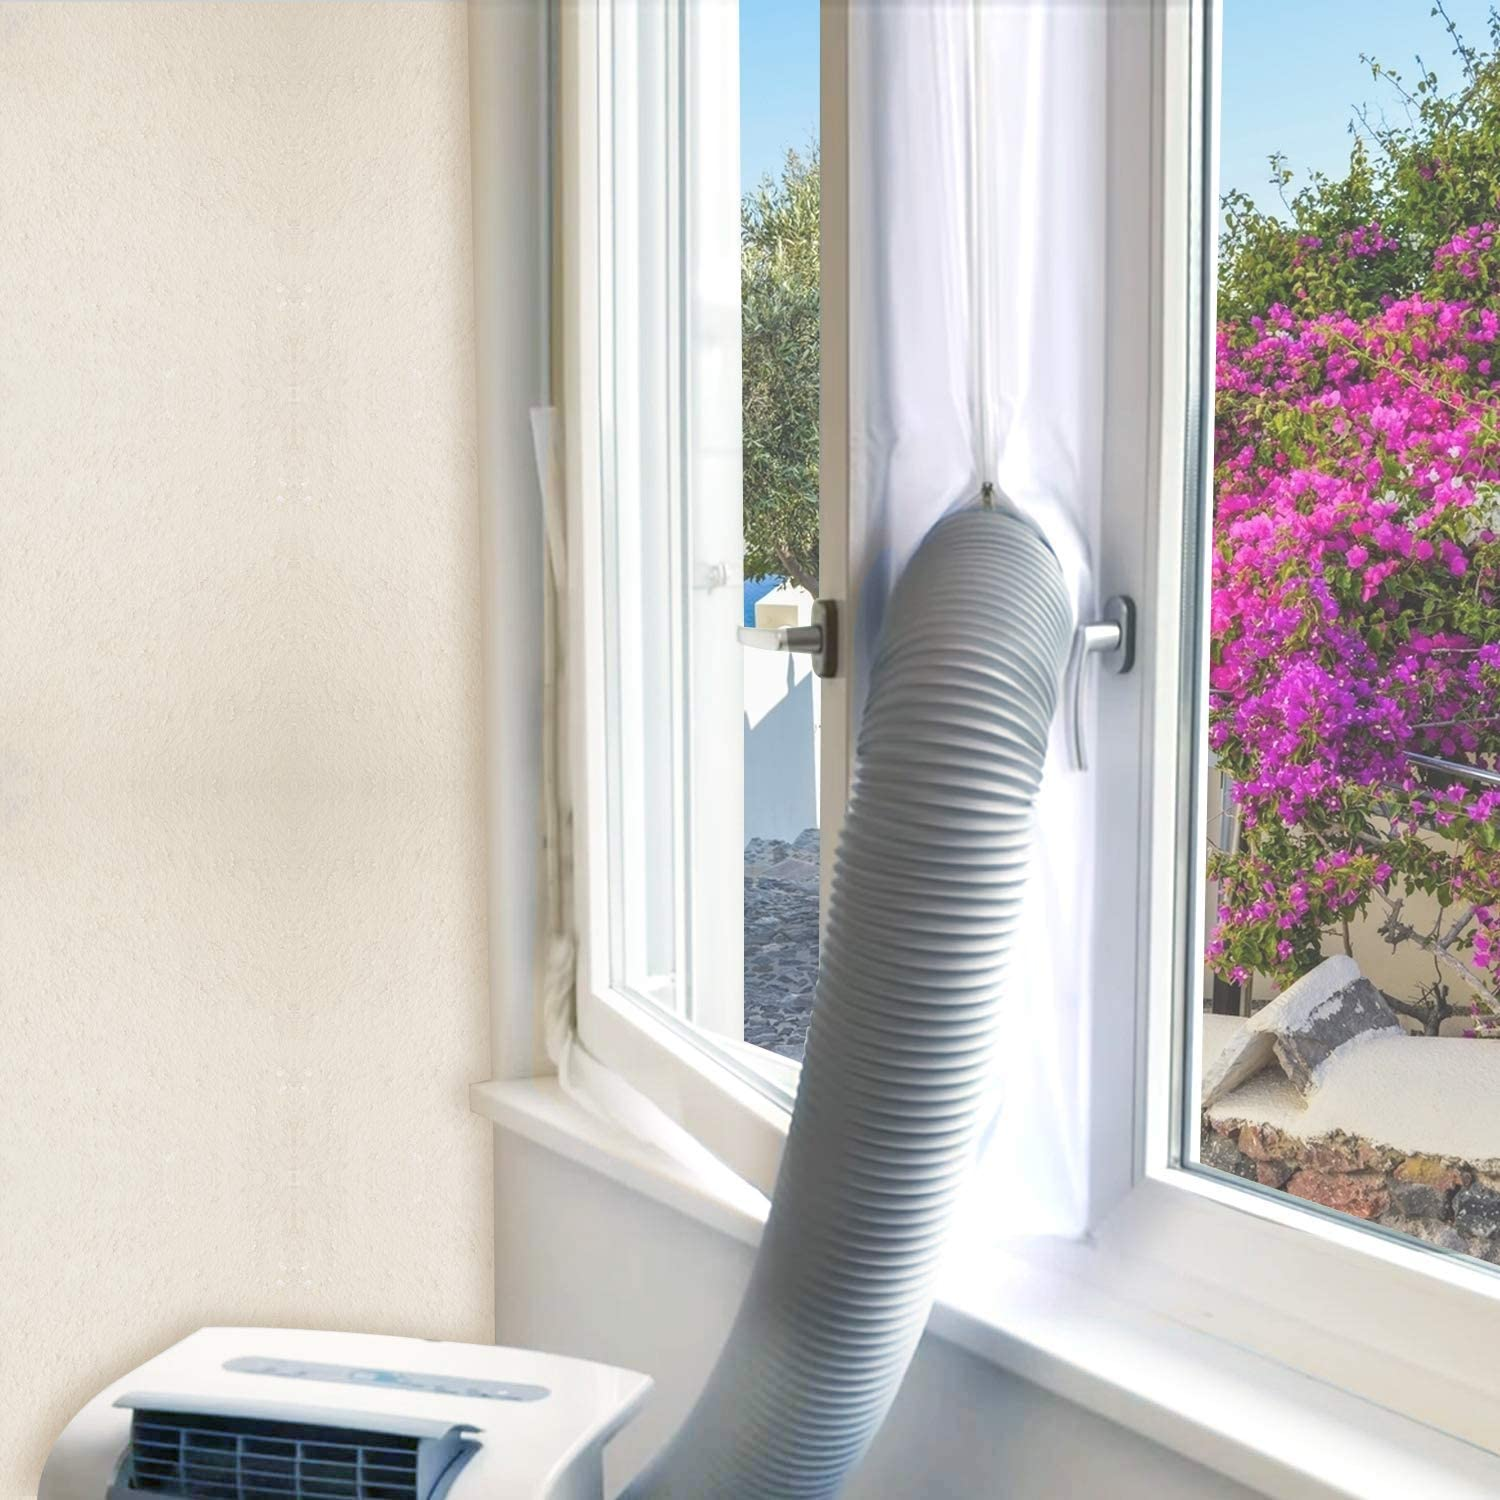 FUNTECK Window Seal Kit for Portable Air Conditioner, Compatible with Small Casement Crank Window and Tilting Window, Waterproof 118 inch Long